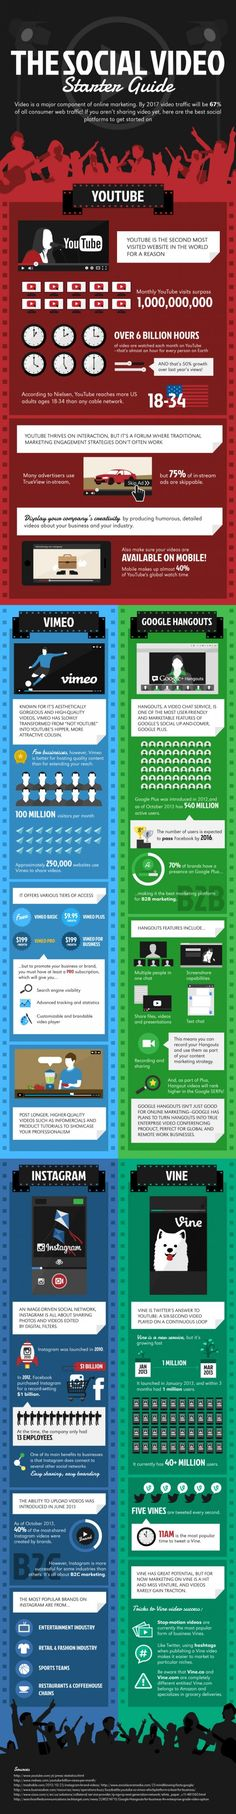 The Social Video Starter Guide [Infographic]  How to Choose the Right Video Platform for Your Business